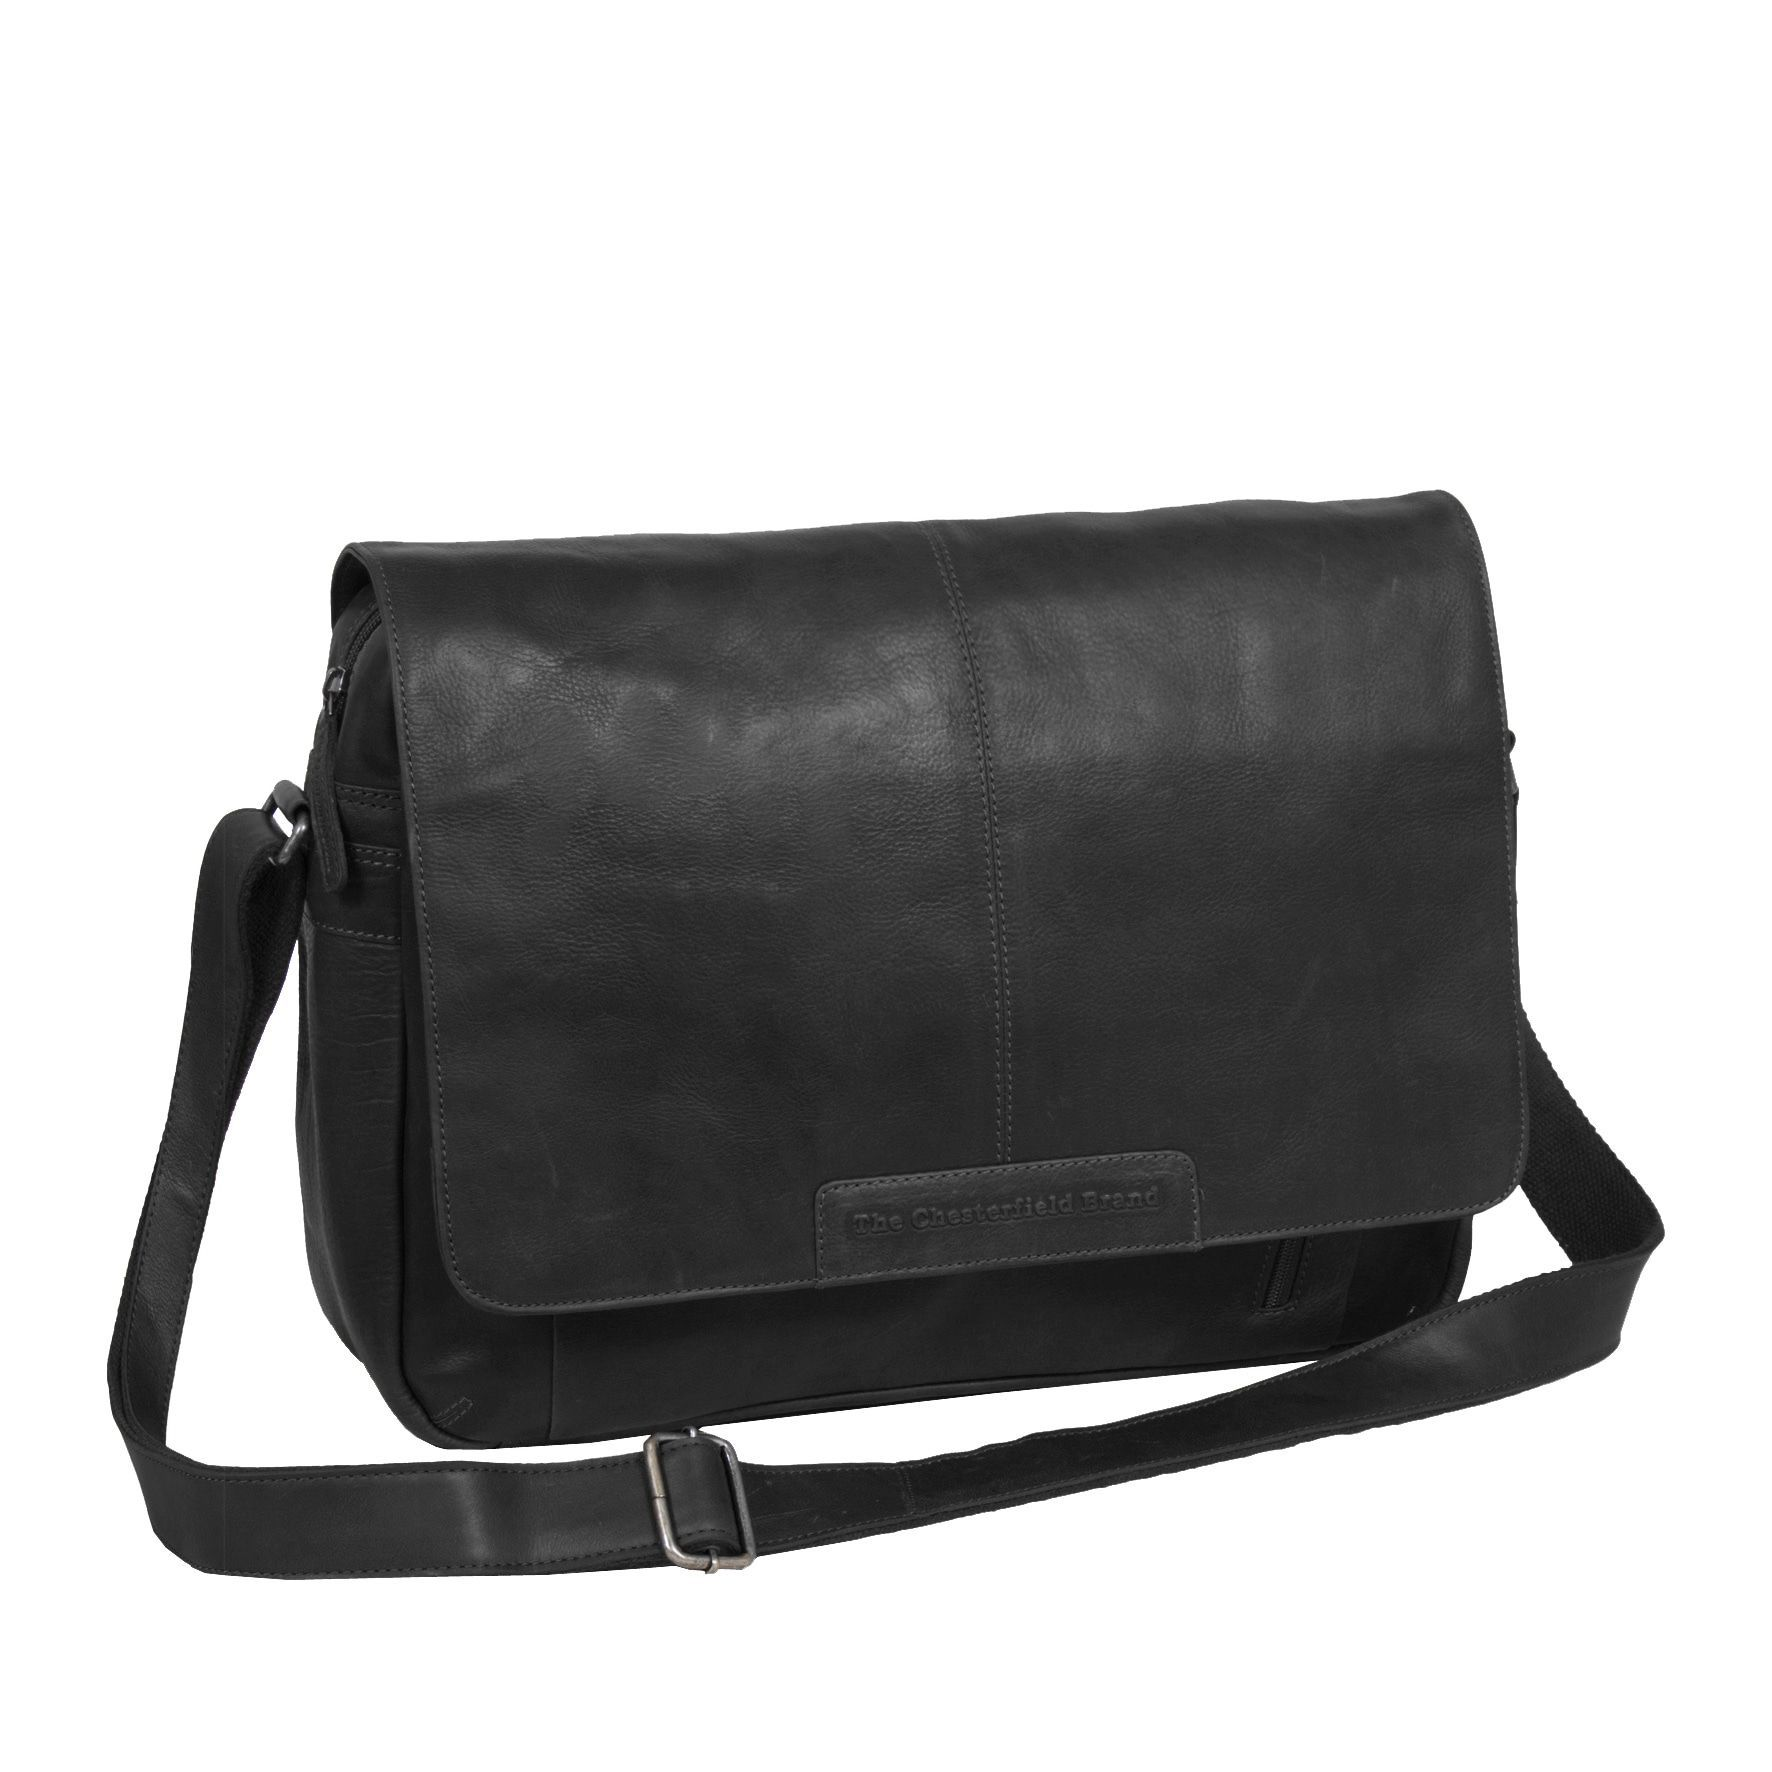 Chesterfield George Casual Messenger Black 15.6 inch